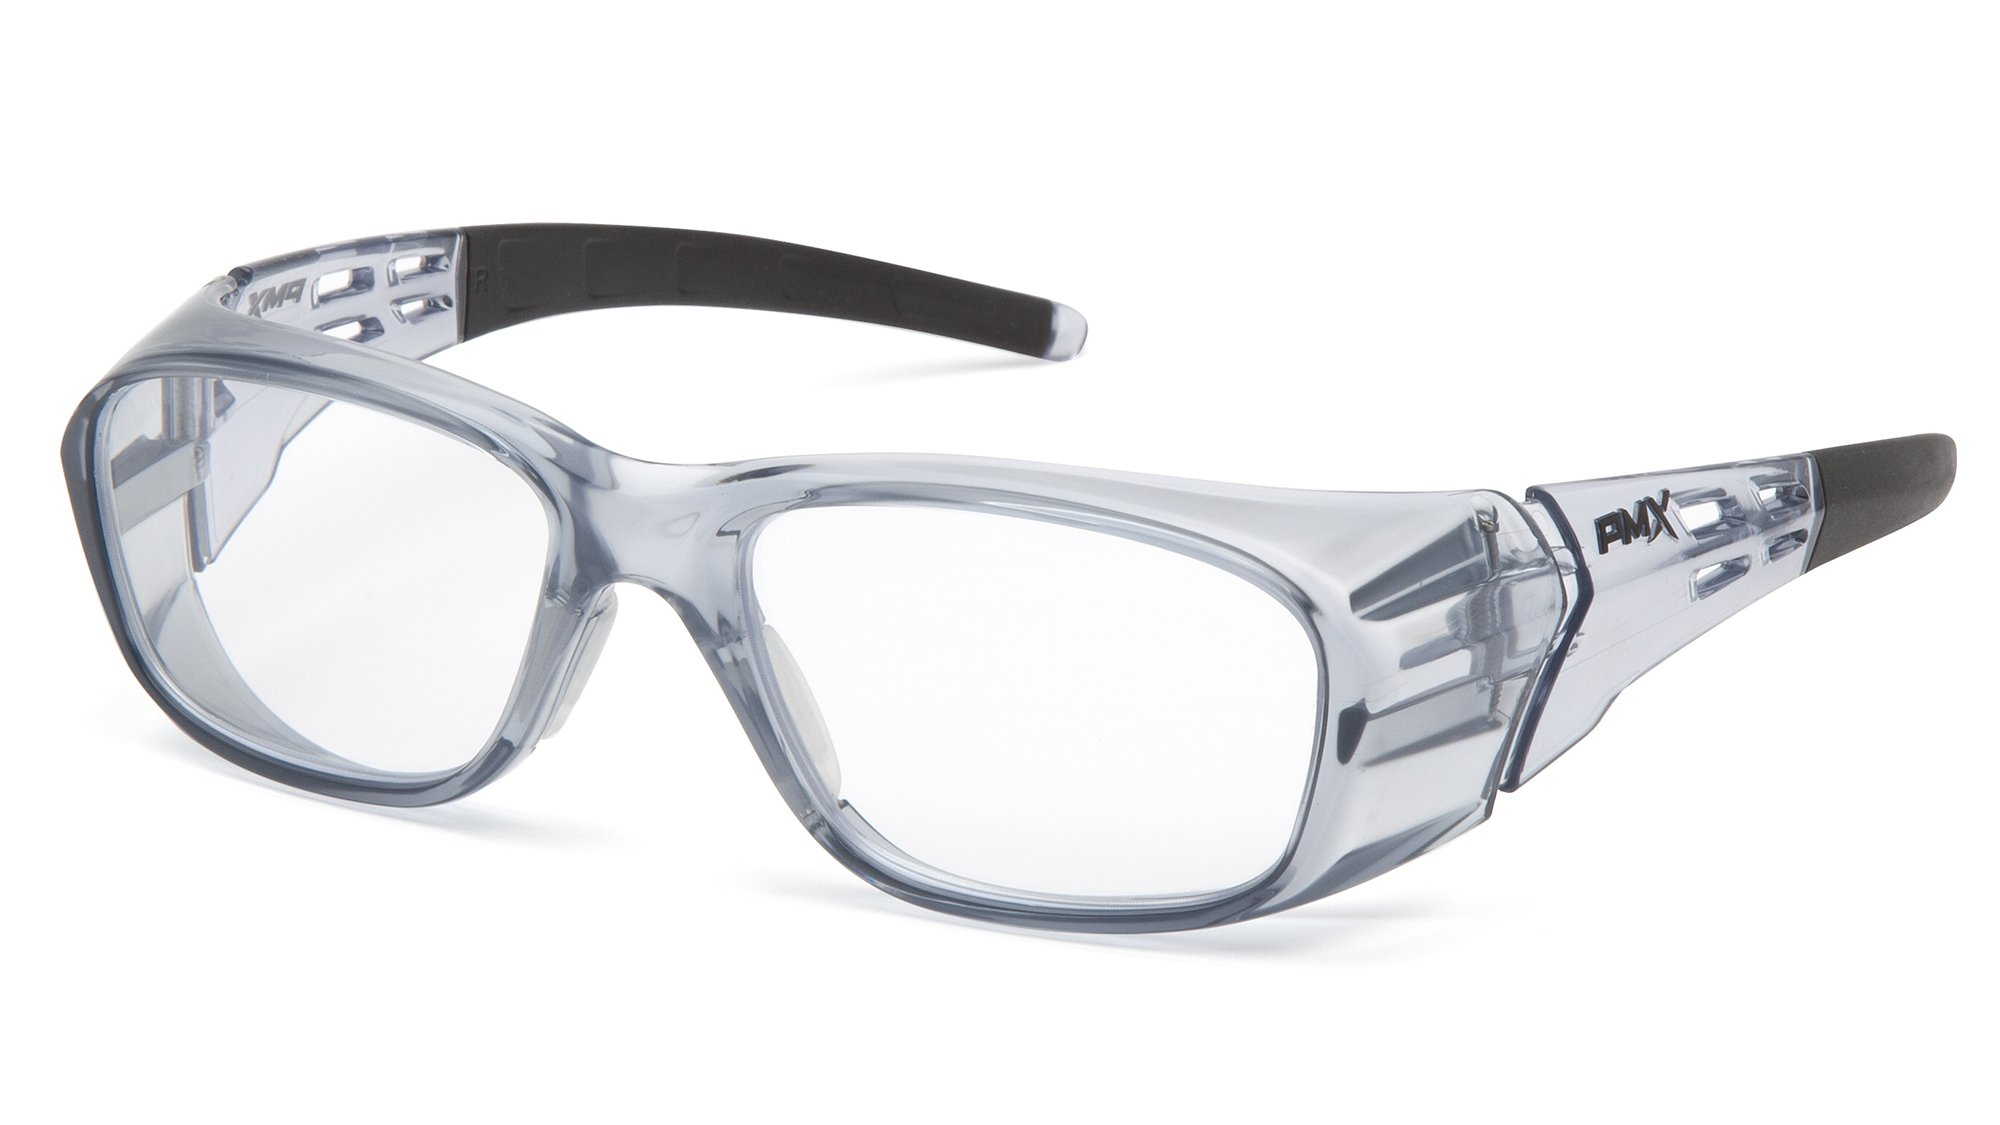 Pyramex Safety Emerge Plus Readers Safety Glasses, 2.0